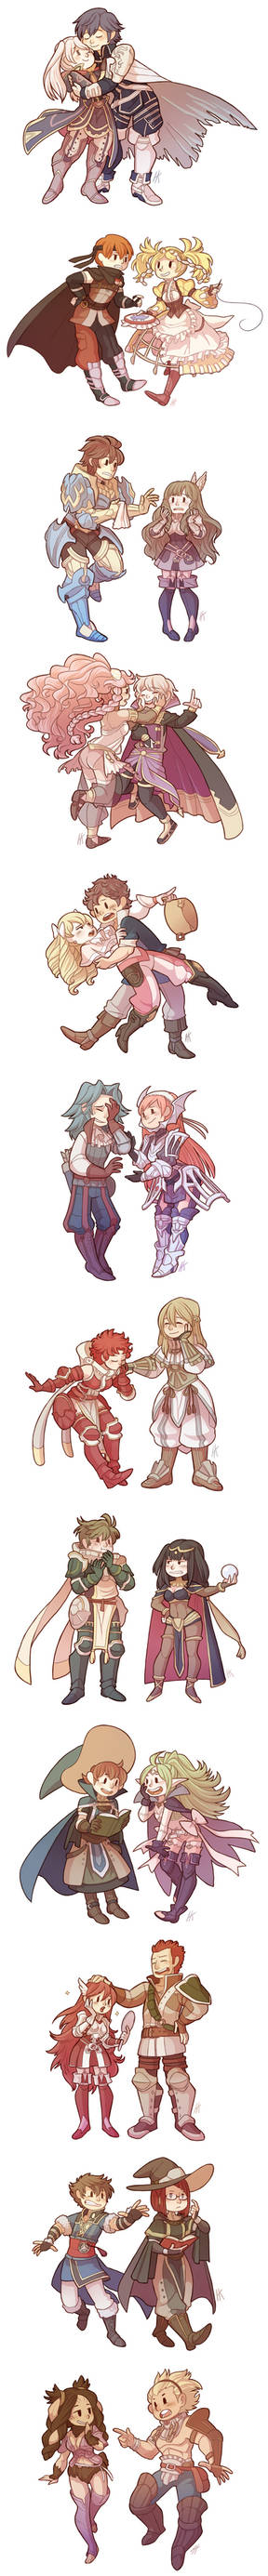 Awakening couples